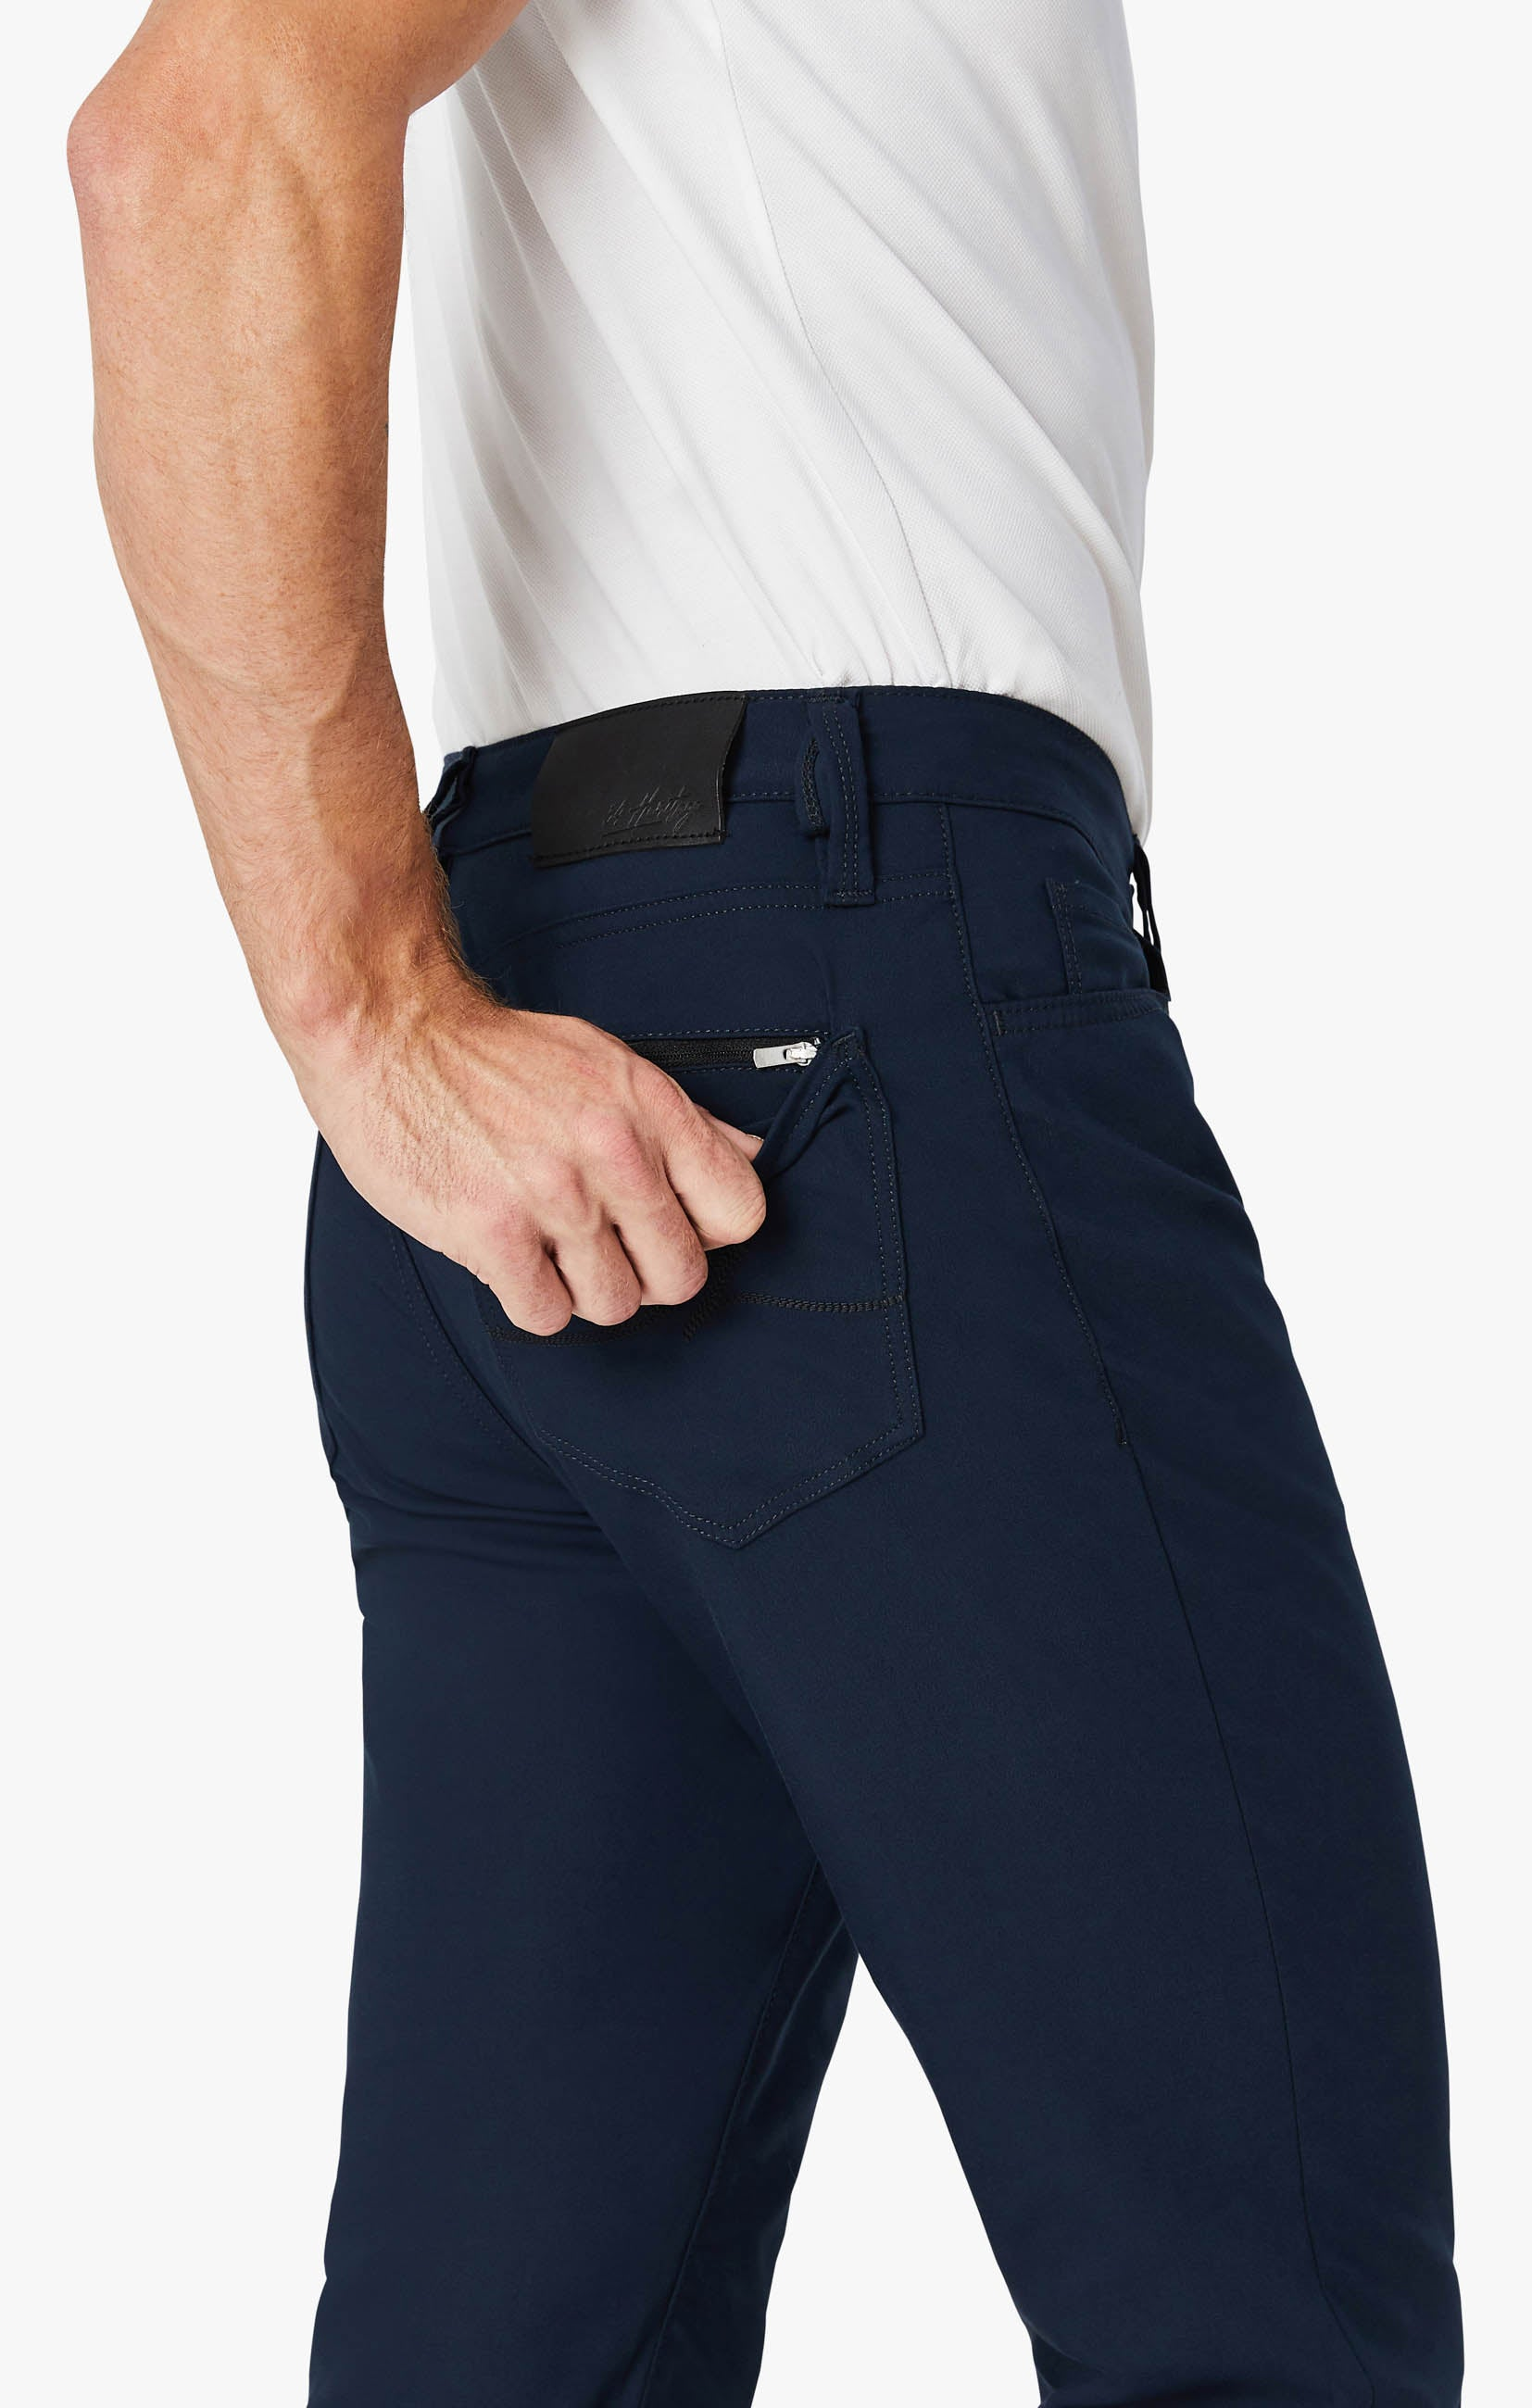 Charisma Classic Fit Pants In Navy Commuter Image 1